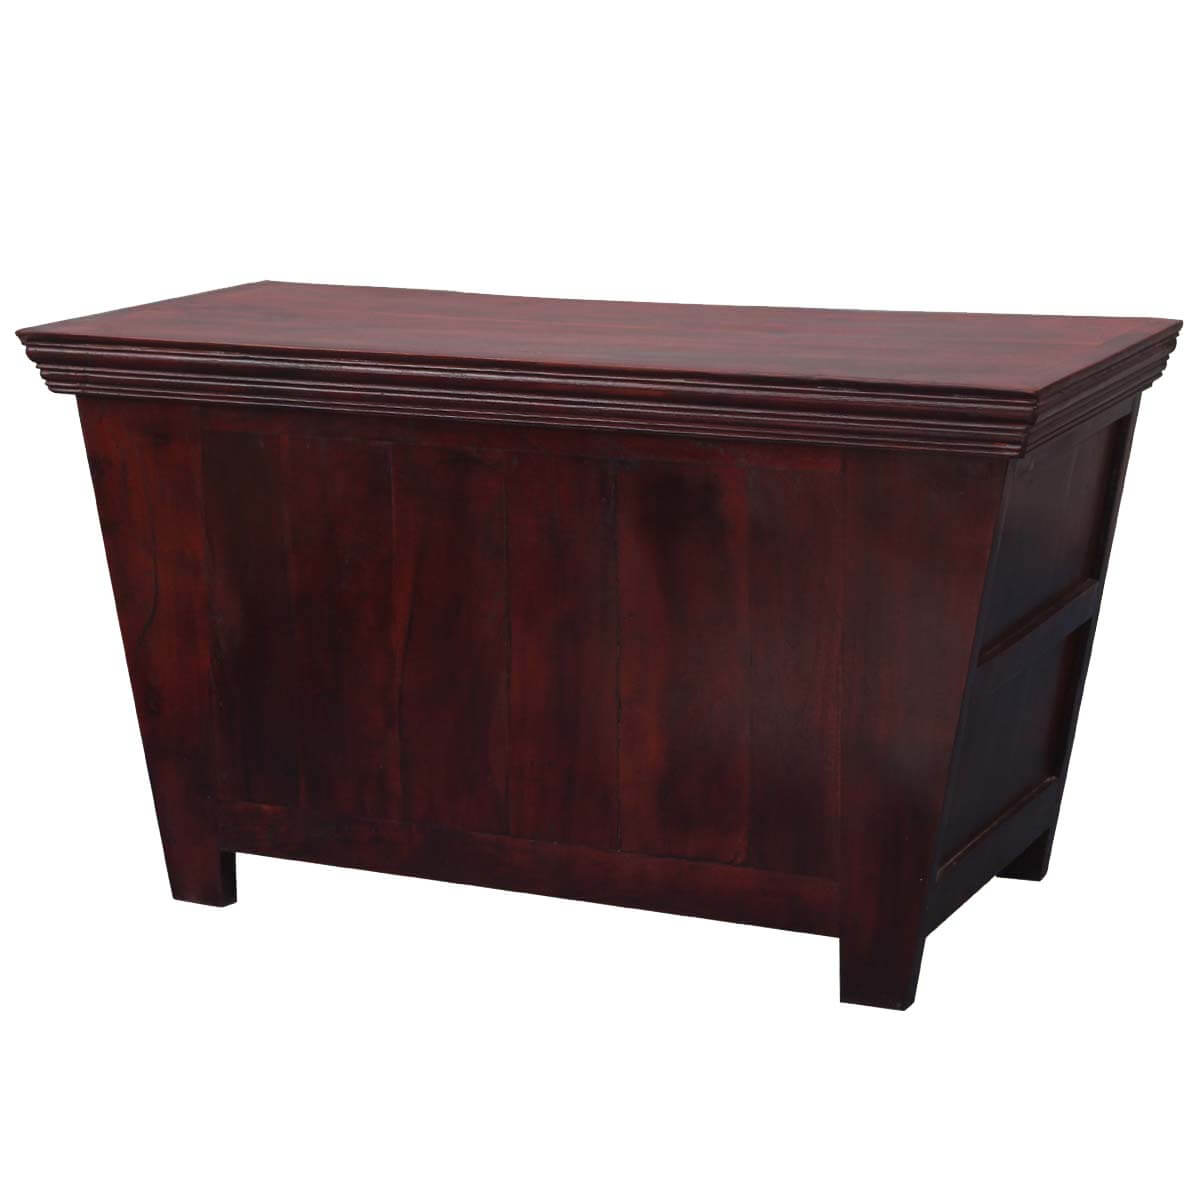 Mission russet solid wood tapered coffee table chest mission russet indian rosewood tapered coffee table chest geotapseo Choice Image